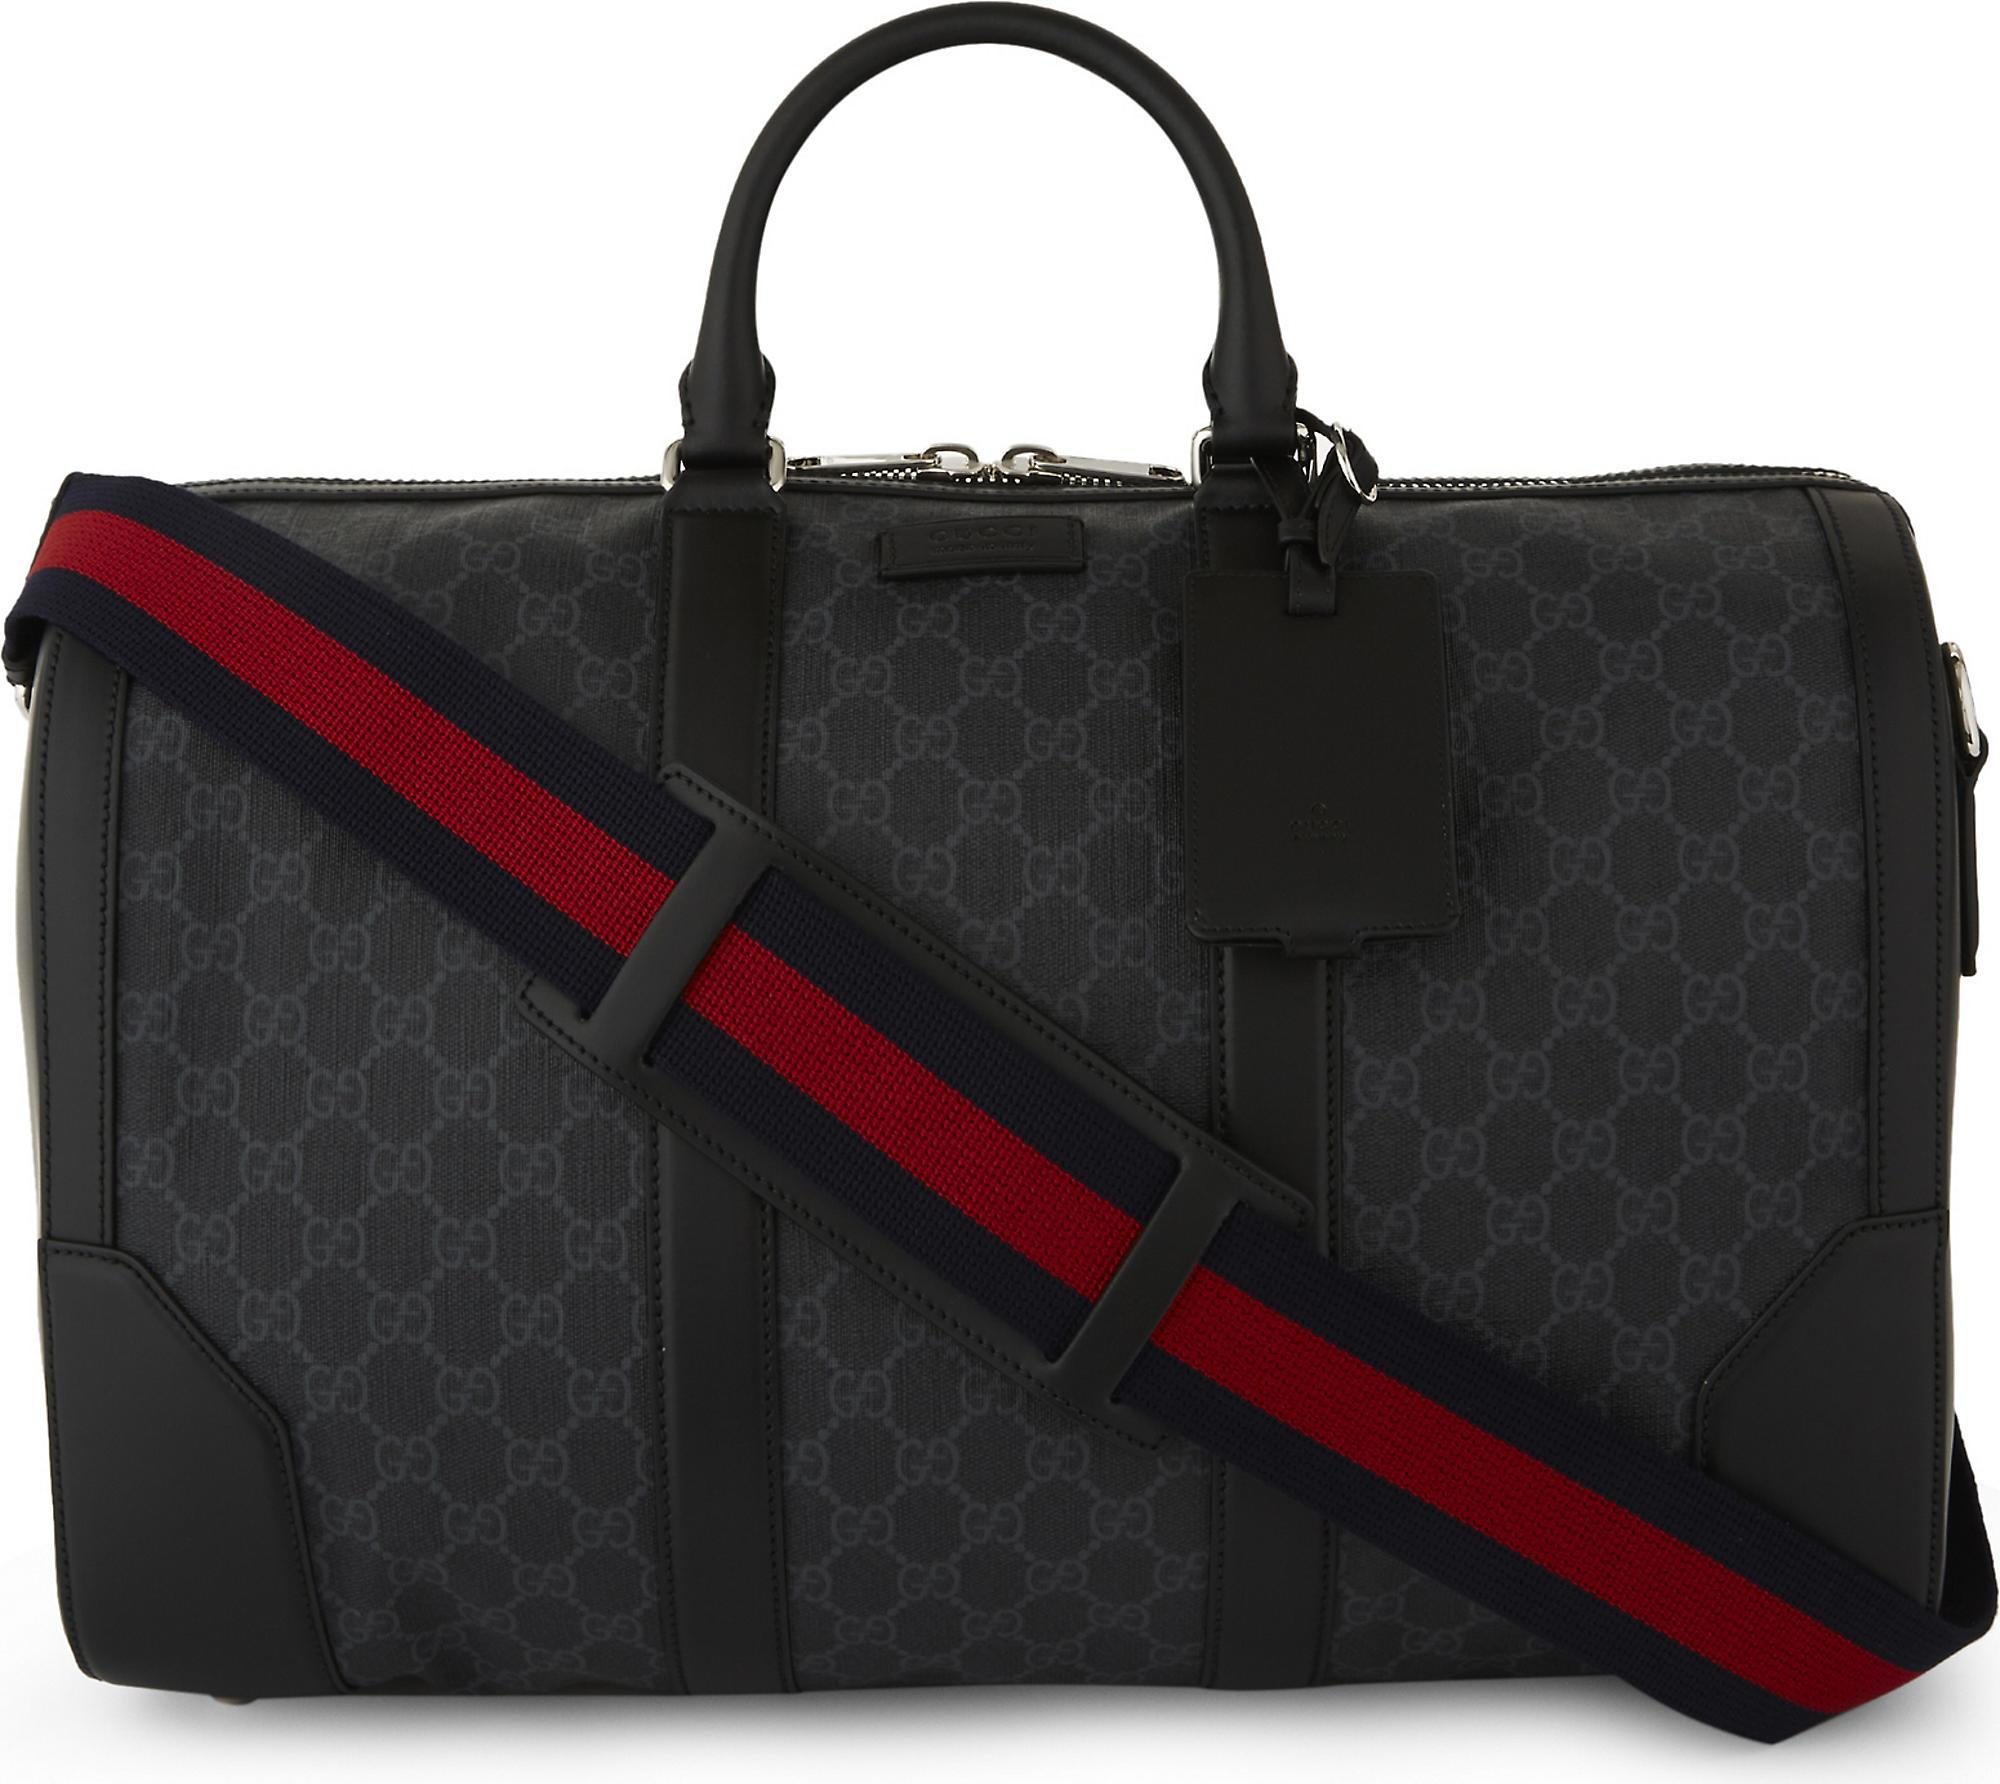 1bfe6da16c40 Gucci Mens Iconic Supreme Canvas And Leather Duffle Bag in Black for ...